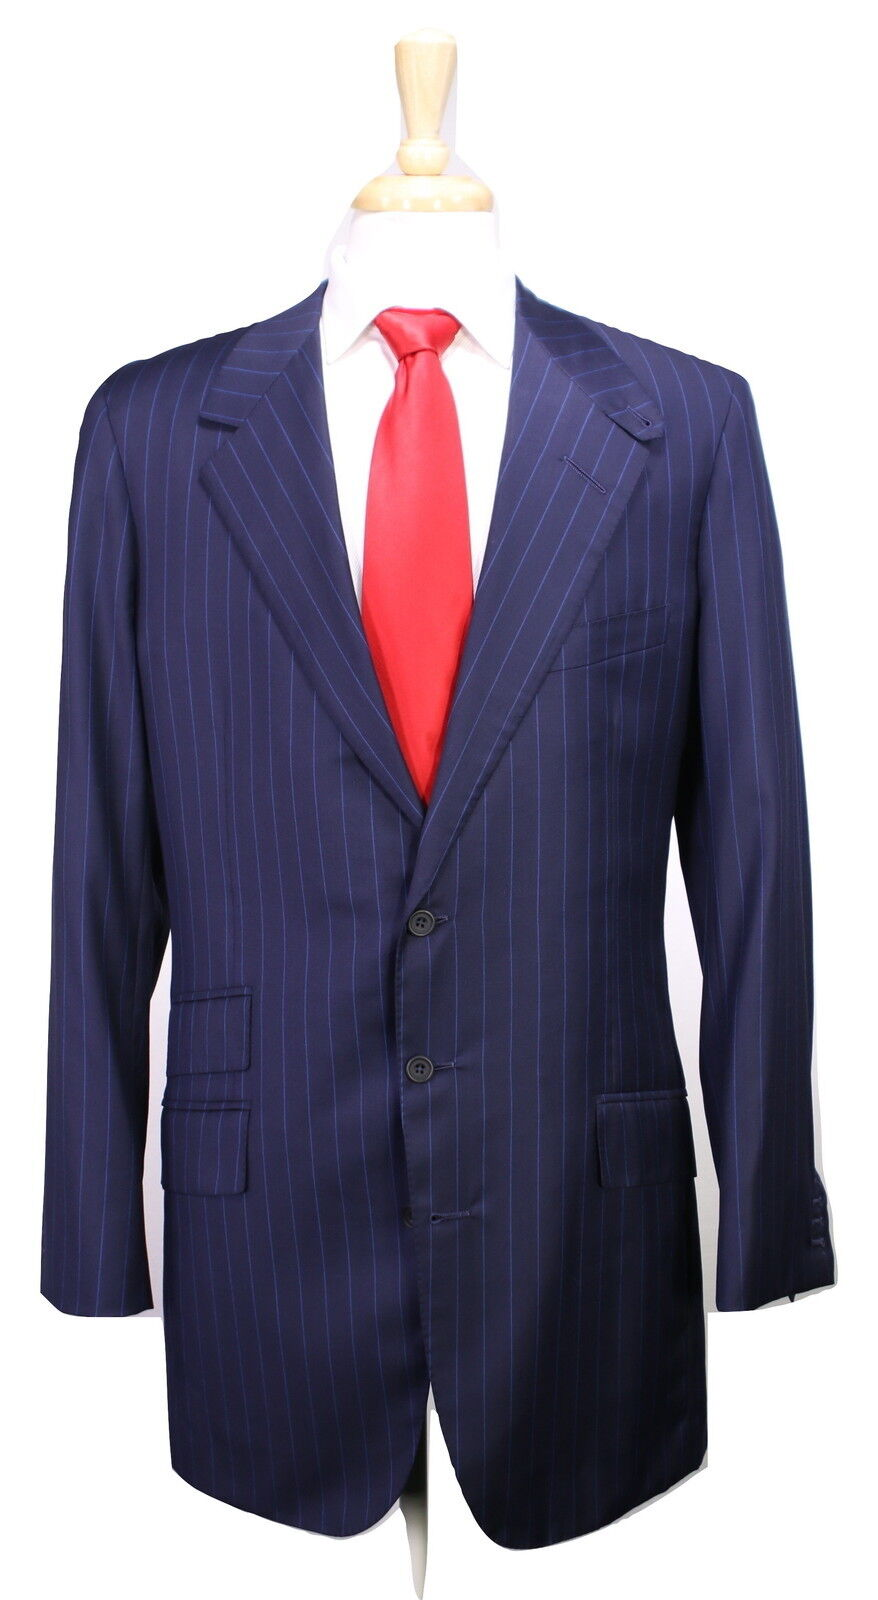 New   EDGAR POMEROY   Bespoke Navy w  Royal bluee Pinstripe 3Btn Suit 42XL